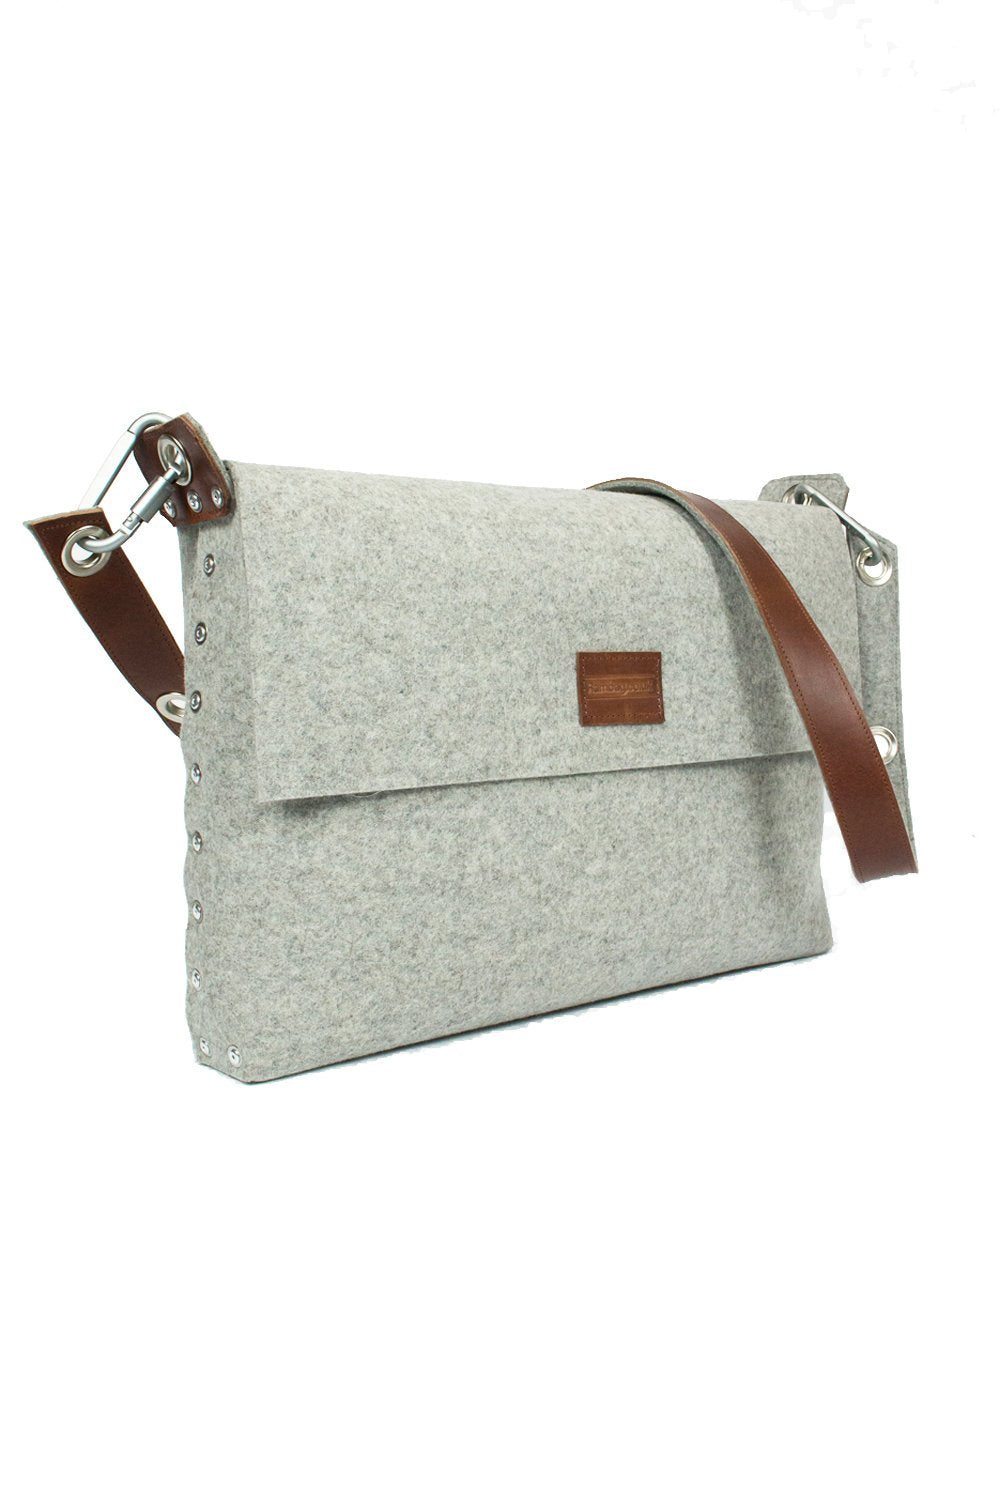 A3 Messenger Bag, Mens satchel bag